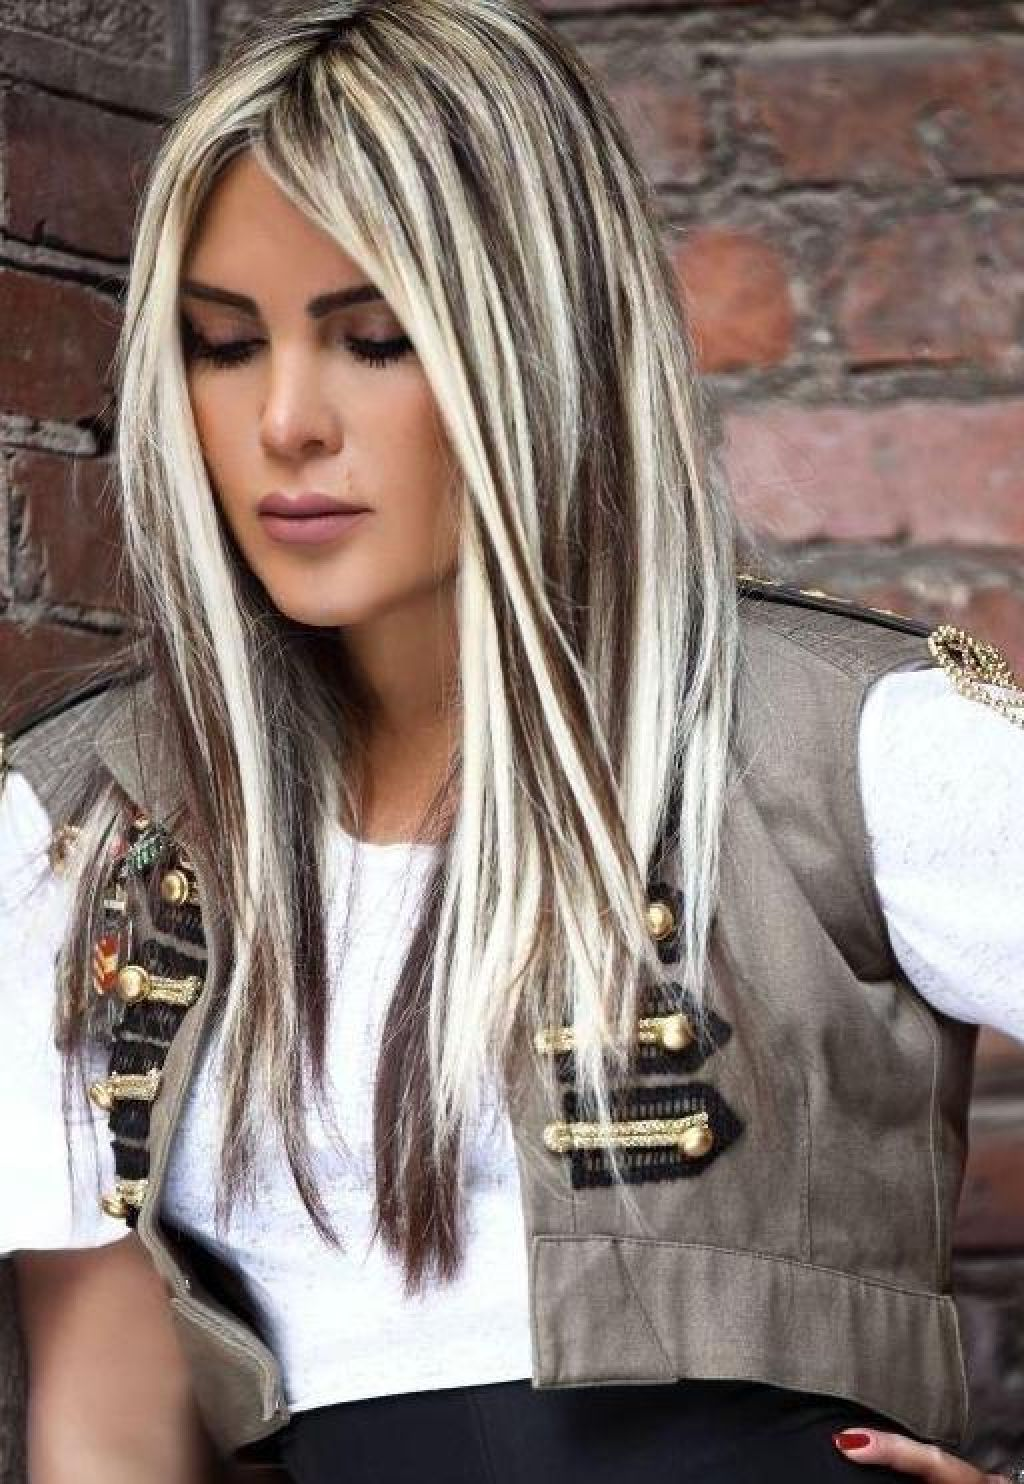 Dark Brown Hair with Blonde Highlights | hair | Pinterest ...